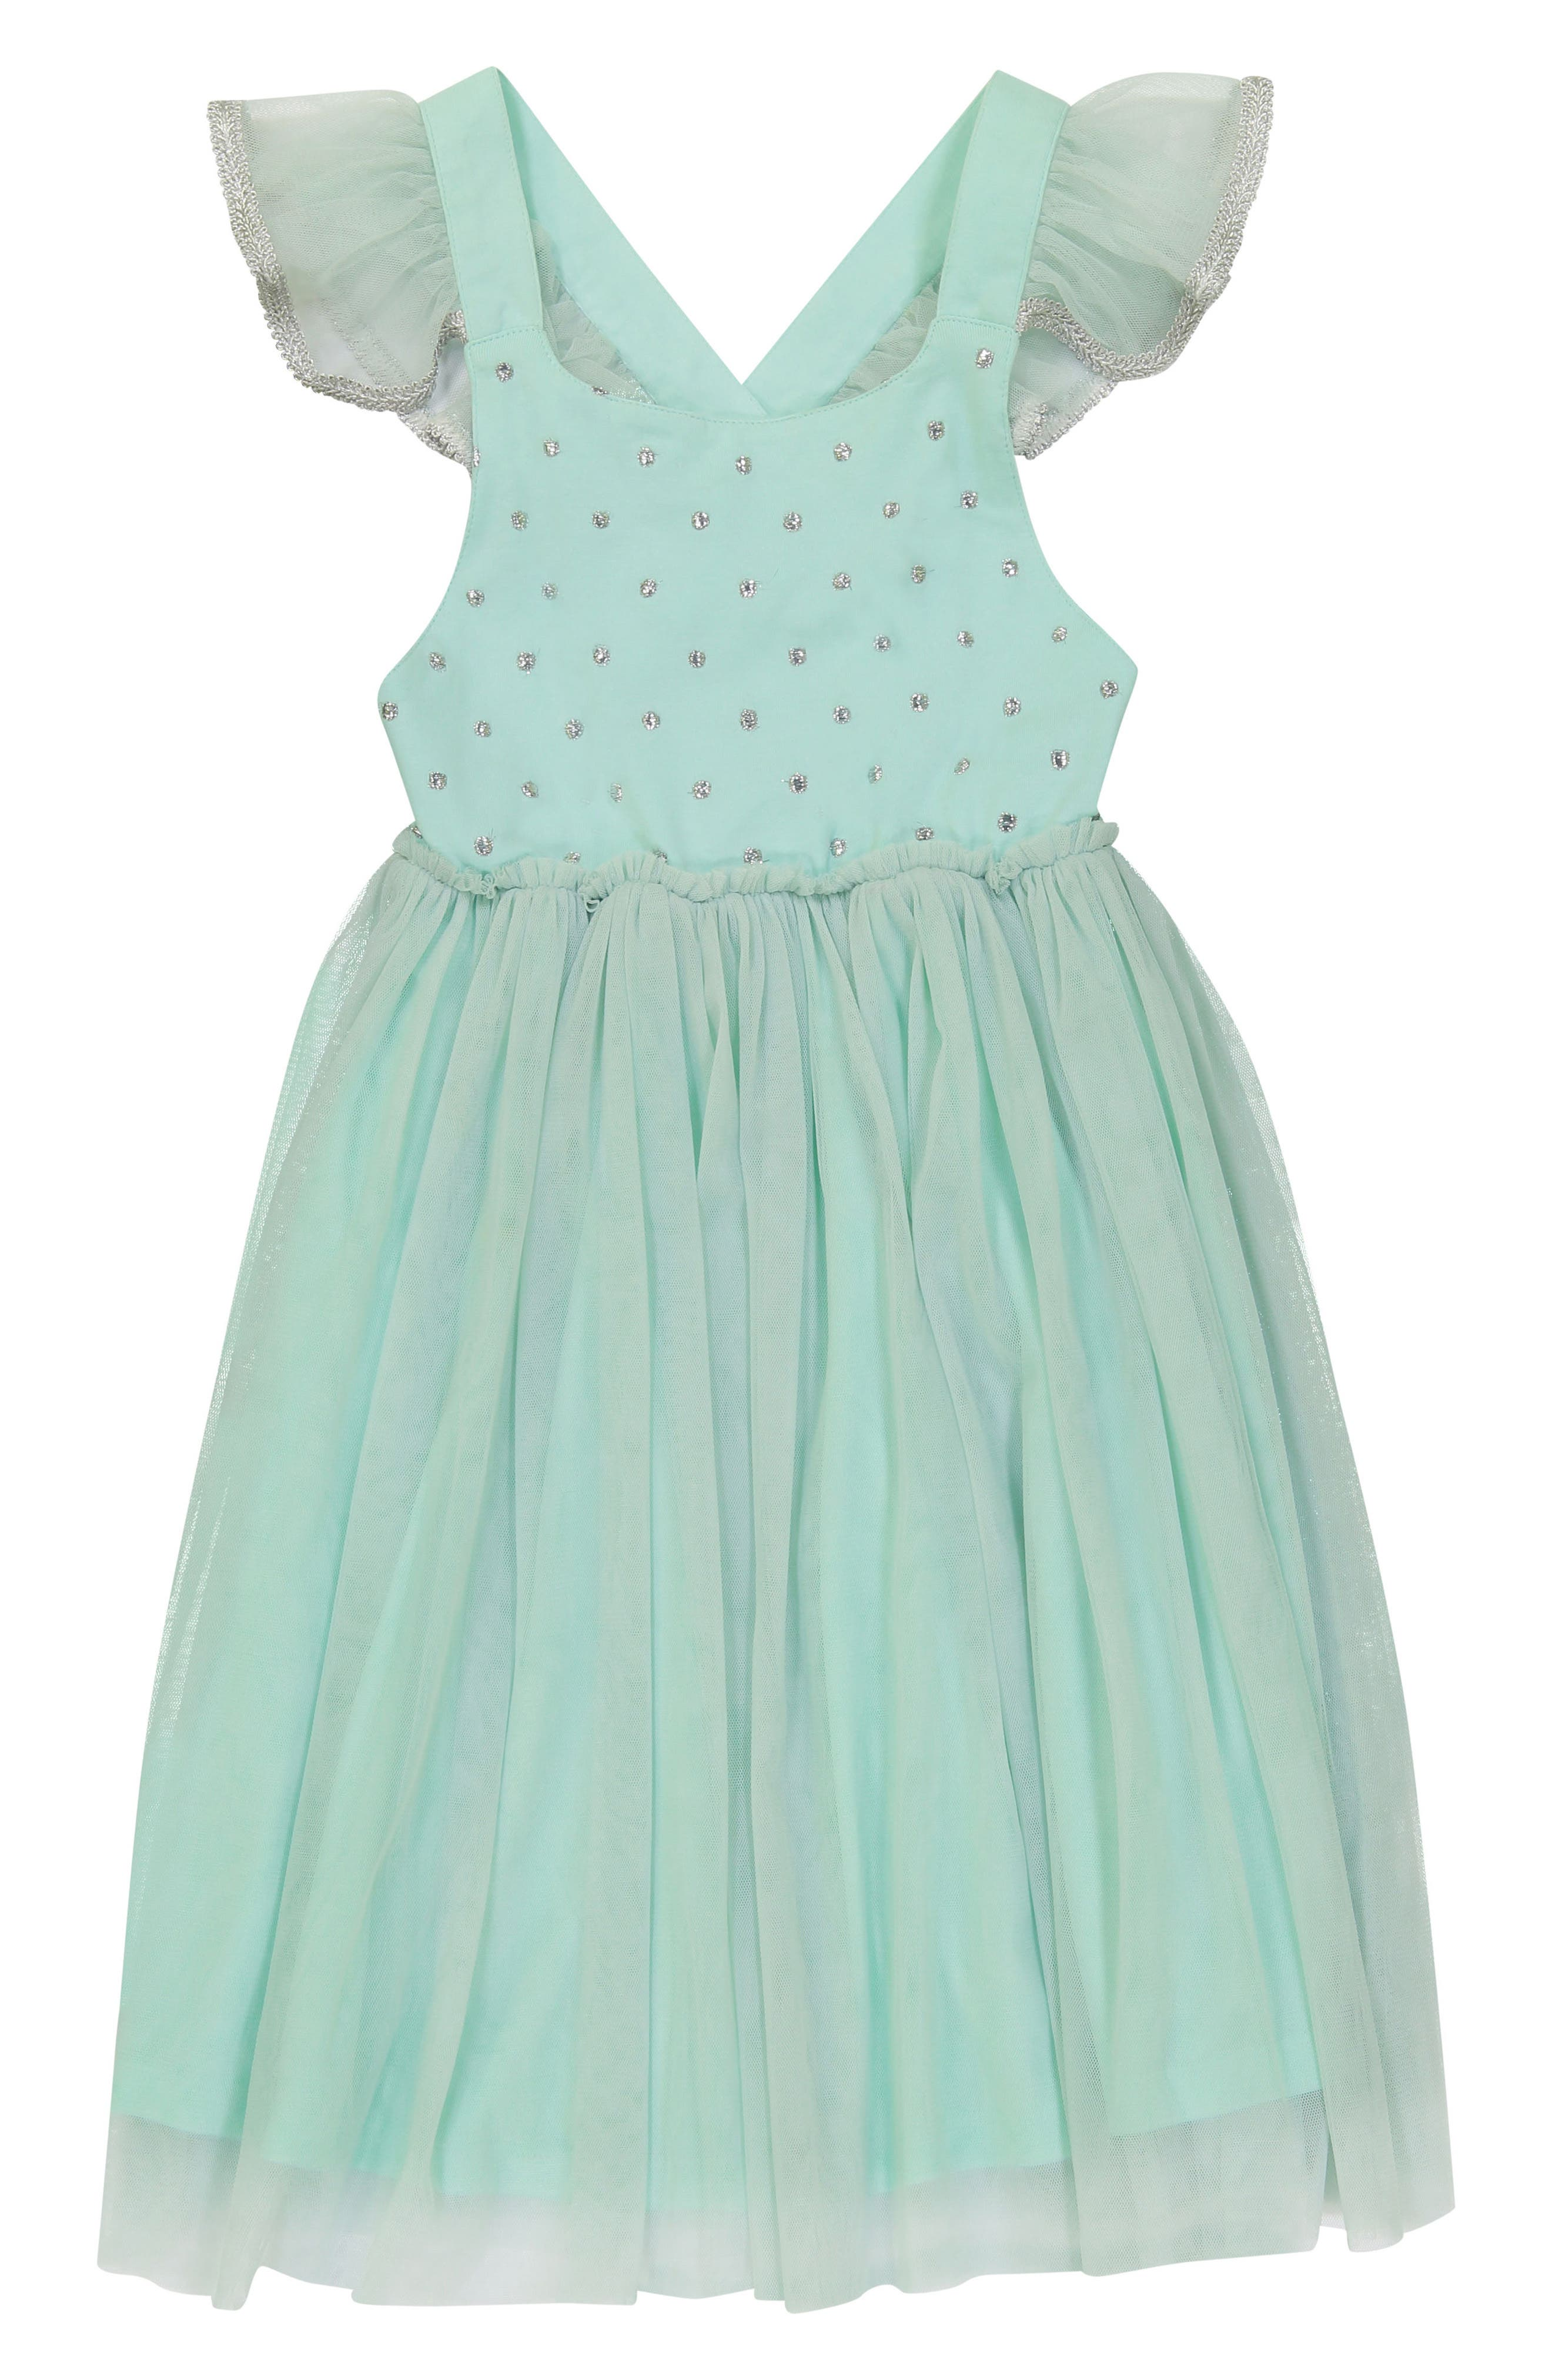 Girls\' Blue Dresses & Rompers: Everyday & Special Occasion | Nordstrom